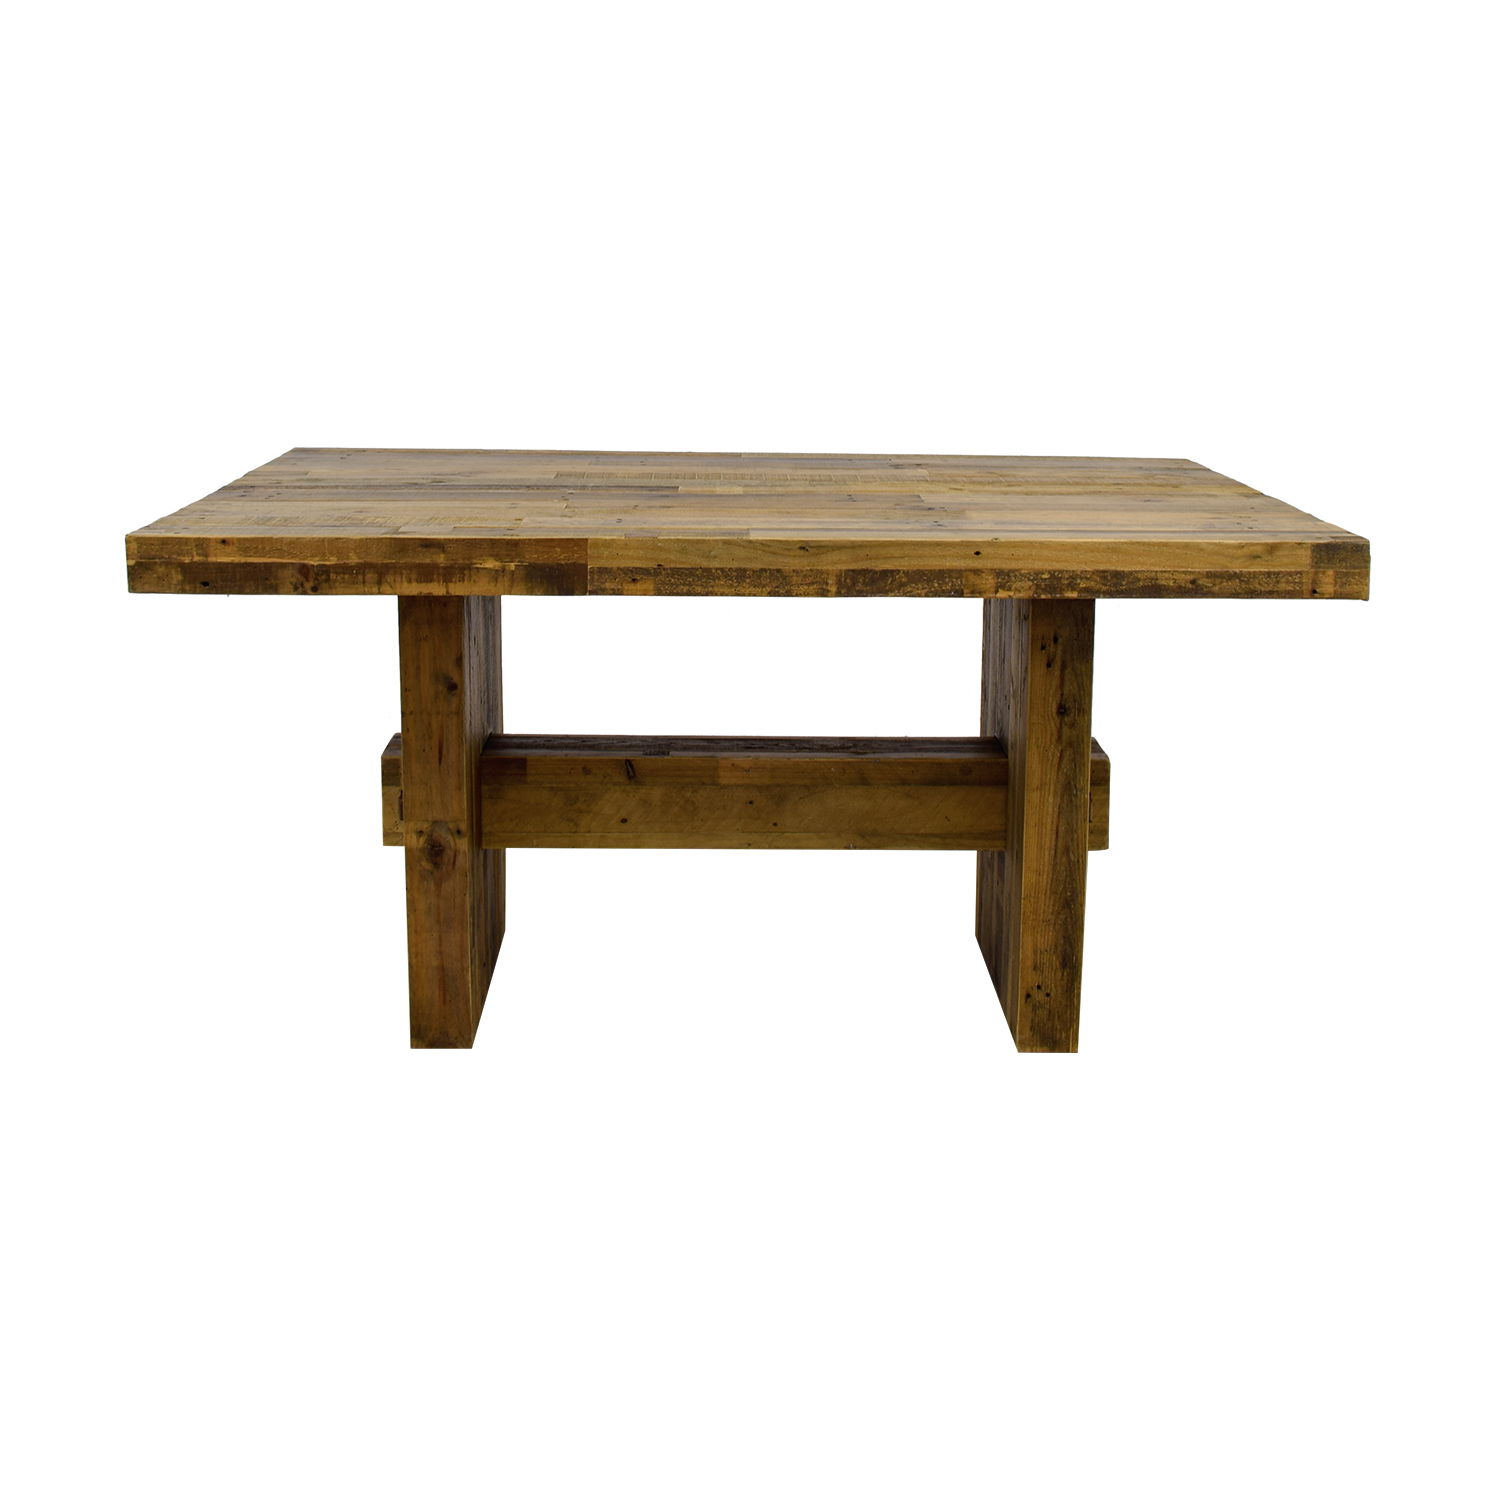 West Elm West Elm Emmerson Reclaimed Wood Dining Table Tables